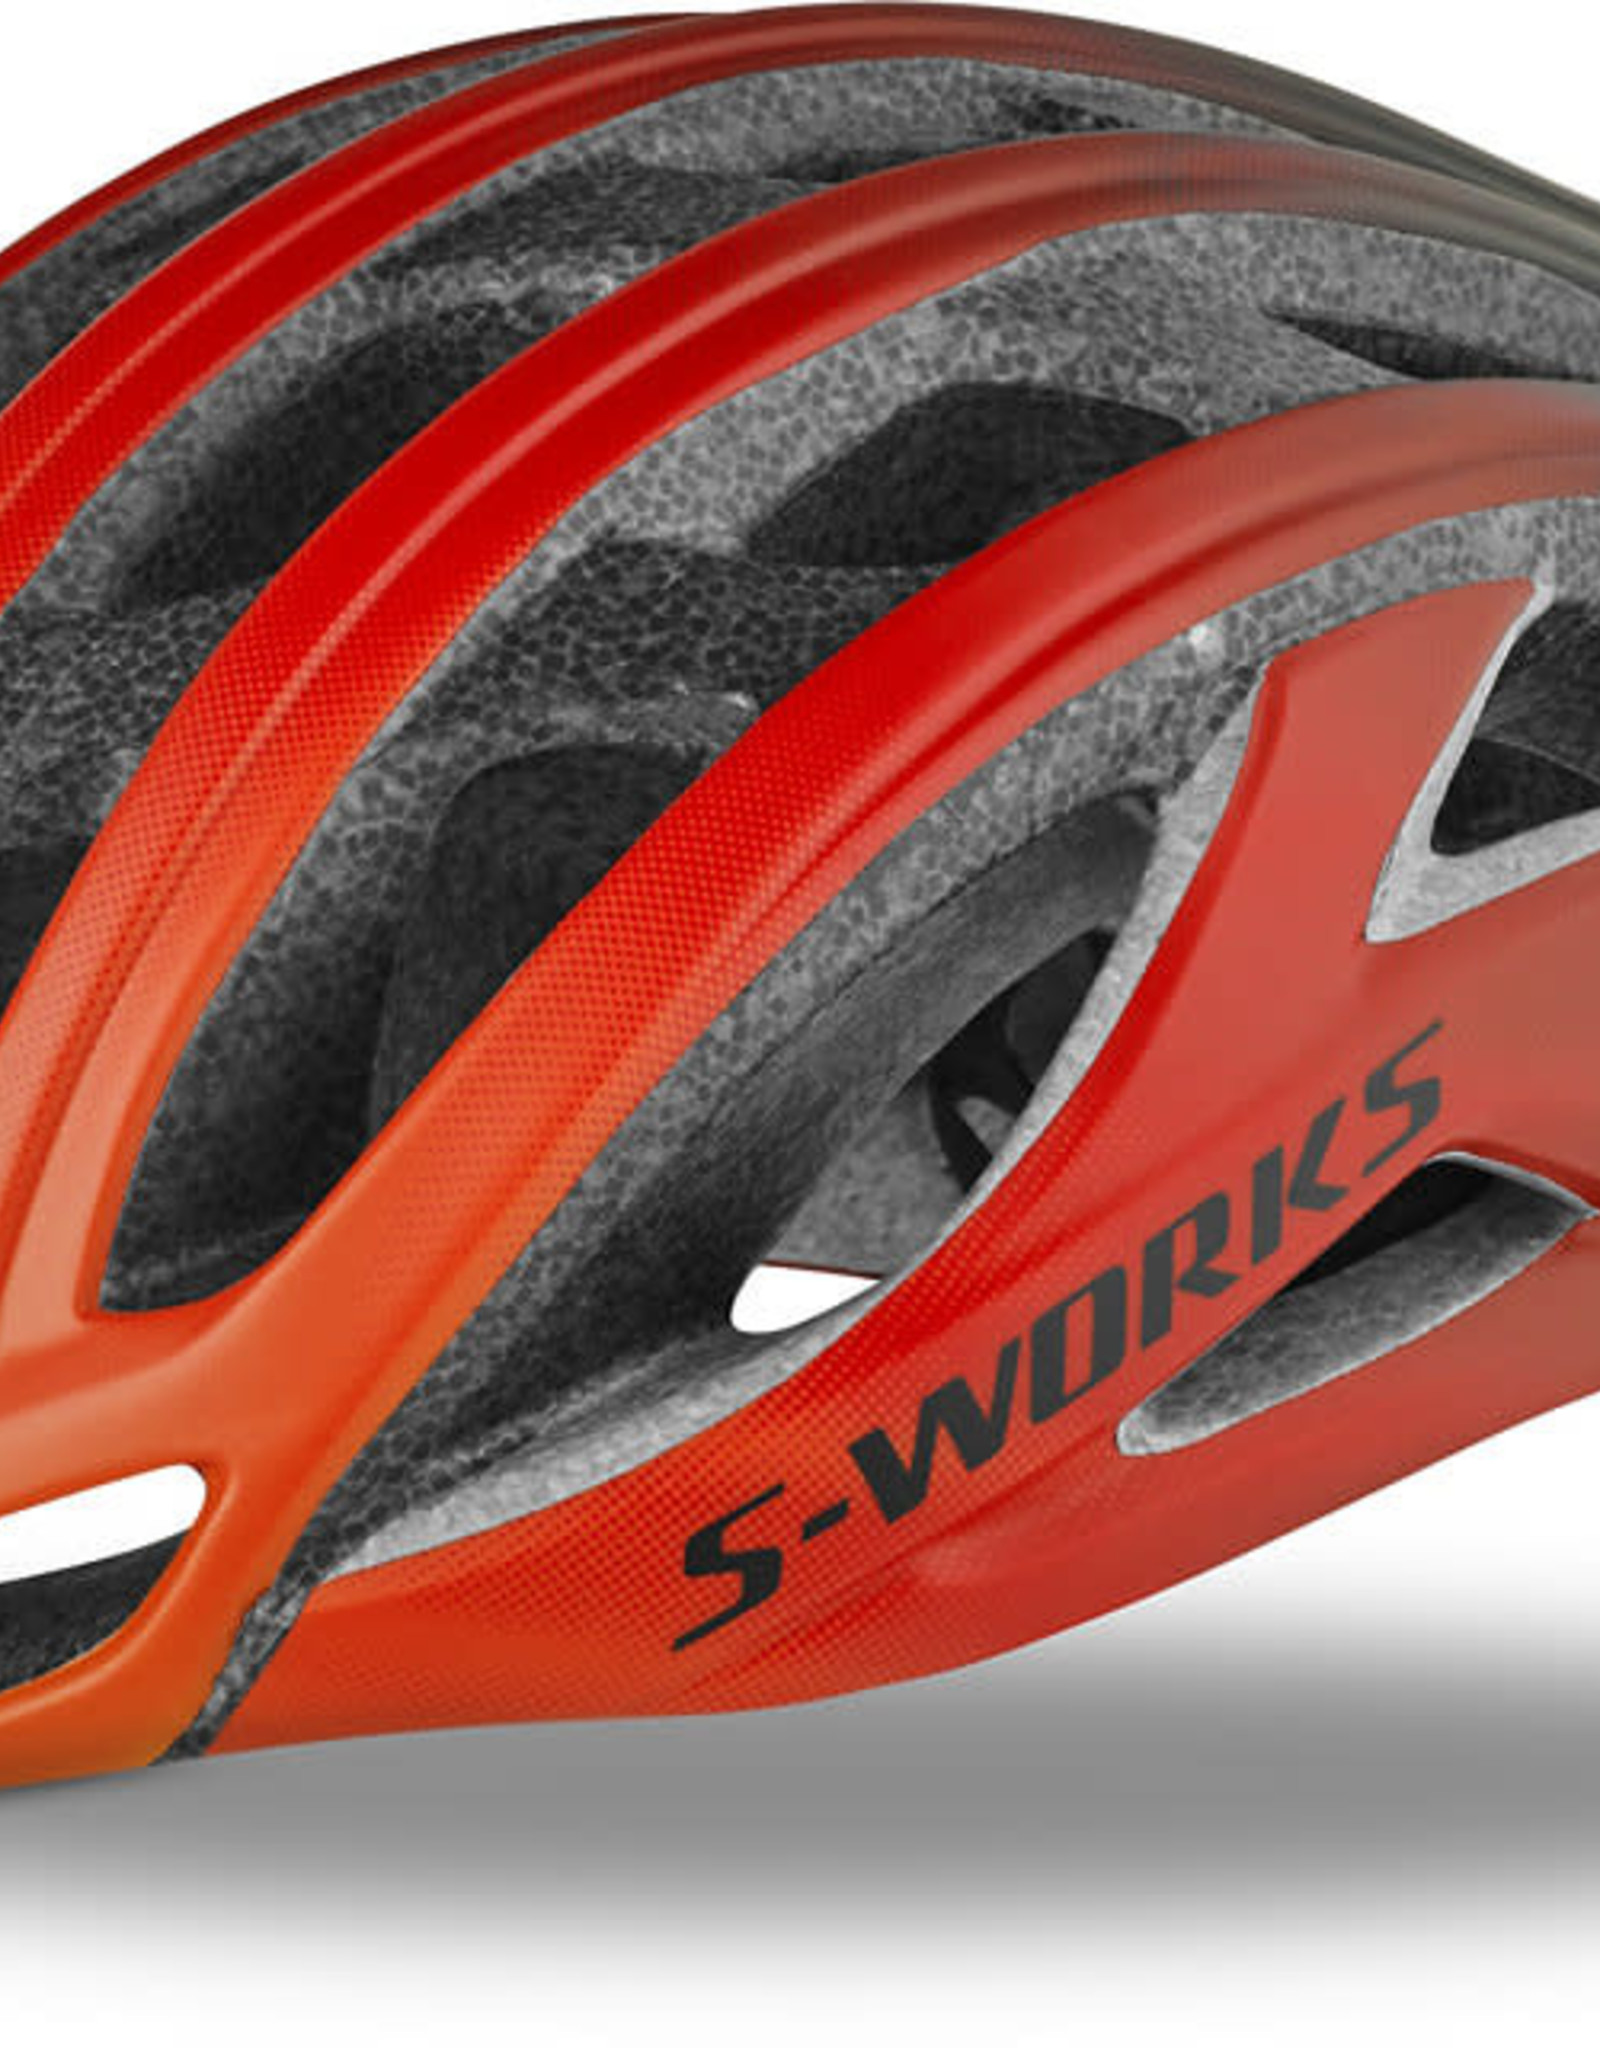 SPECIALIZED S-Works Prevail II